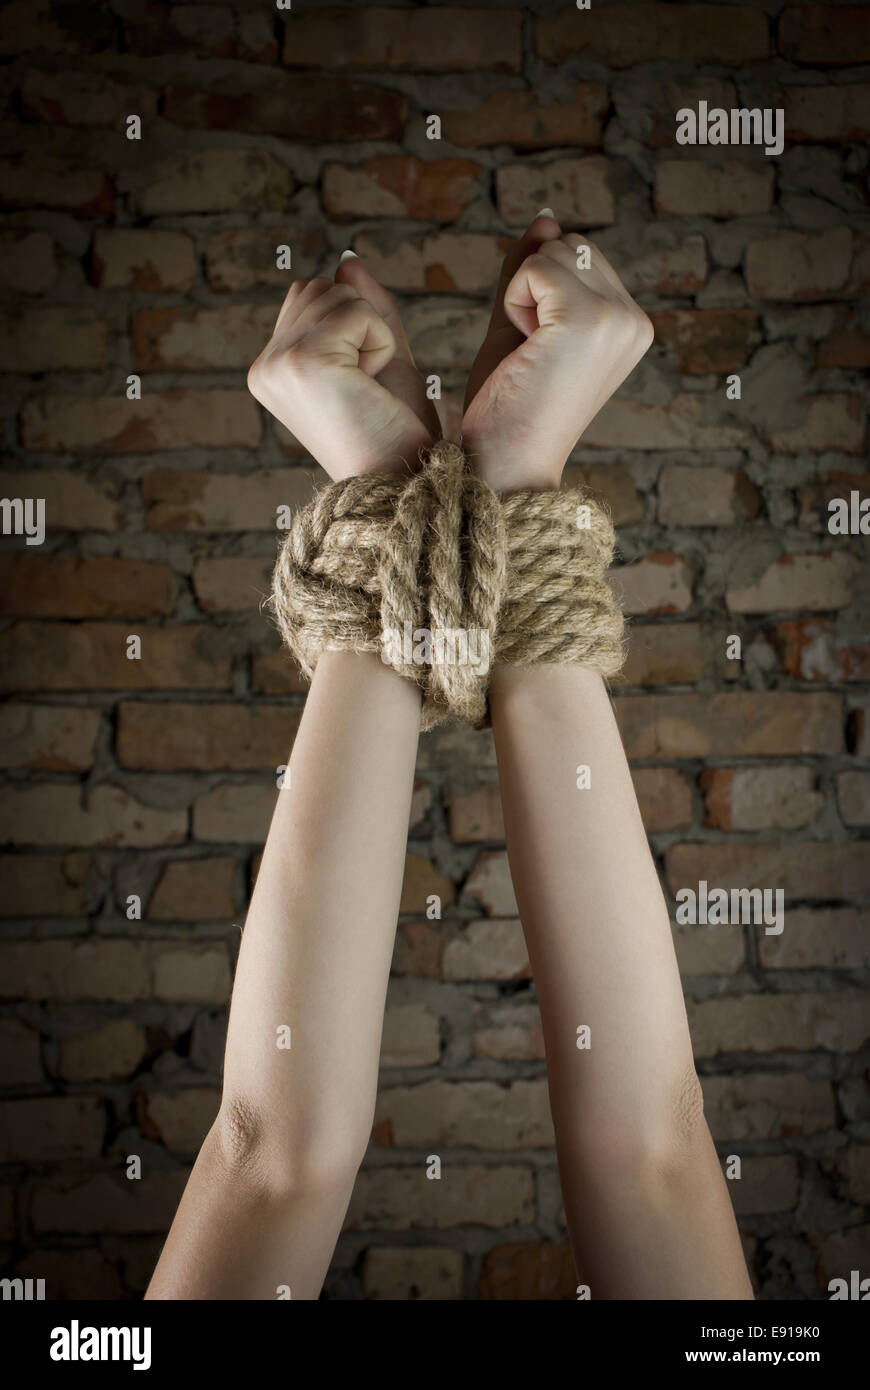 Hands tied above head